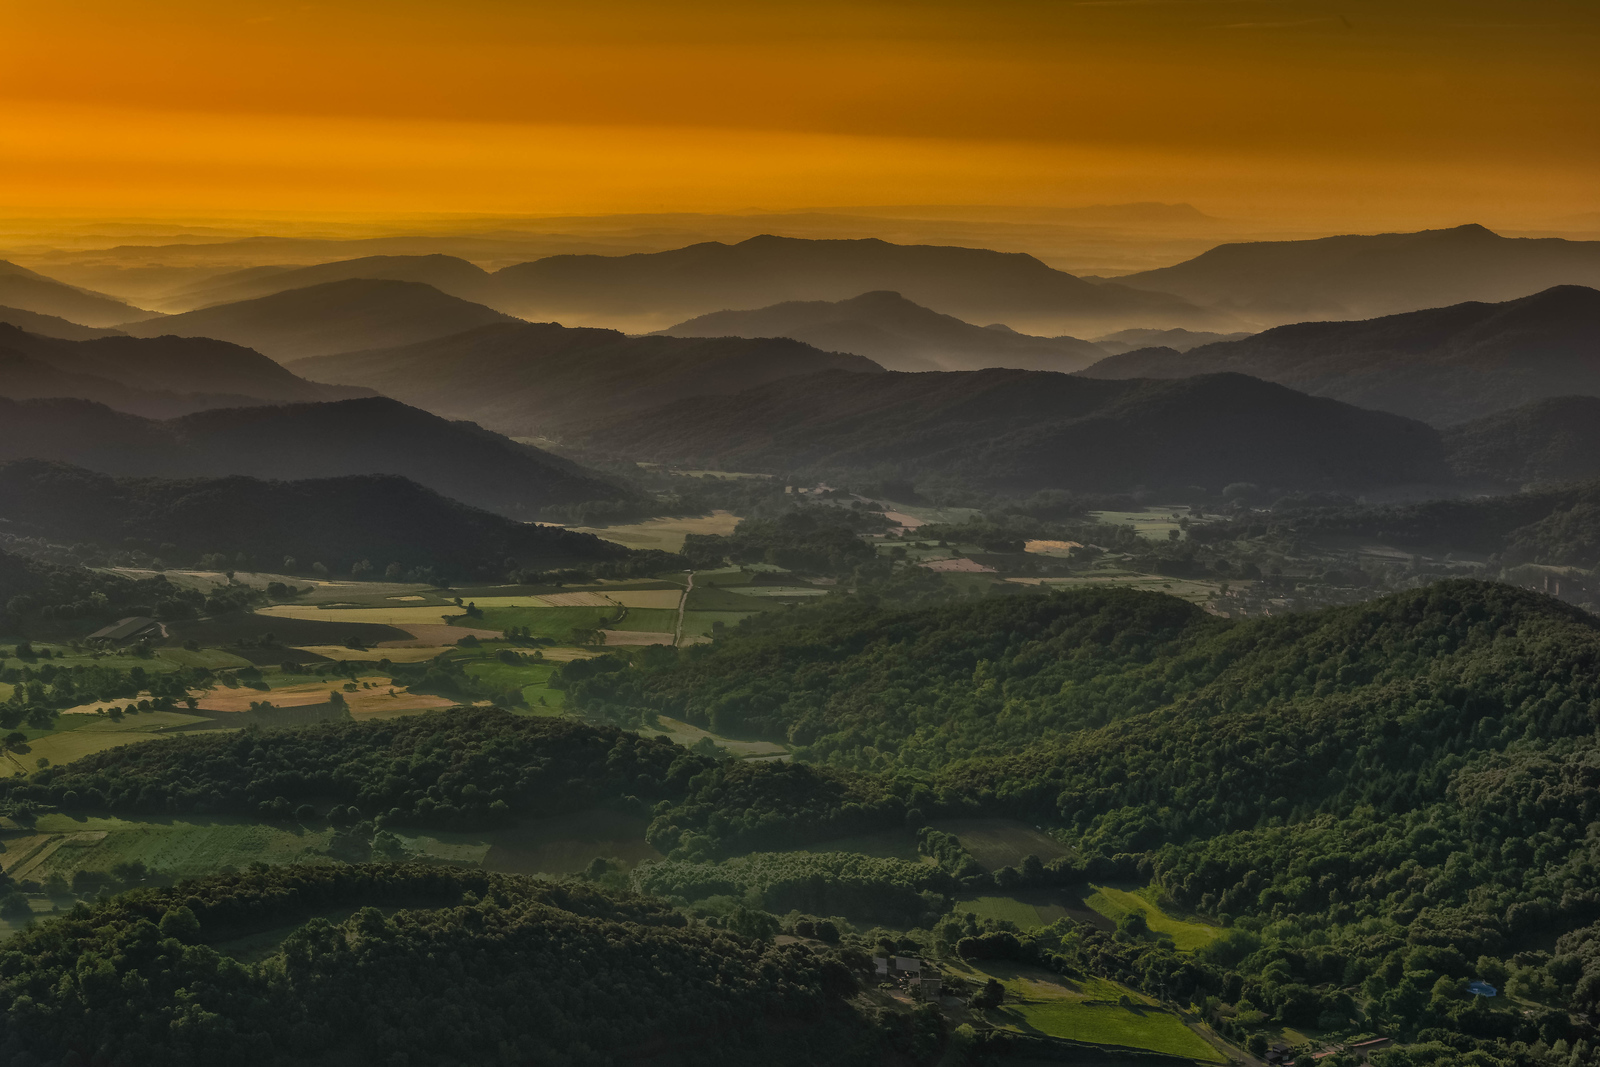 Sunrise over the Pyrenees, Spain